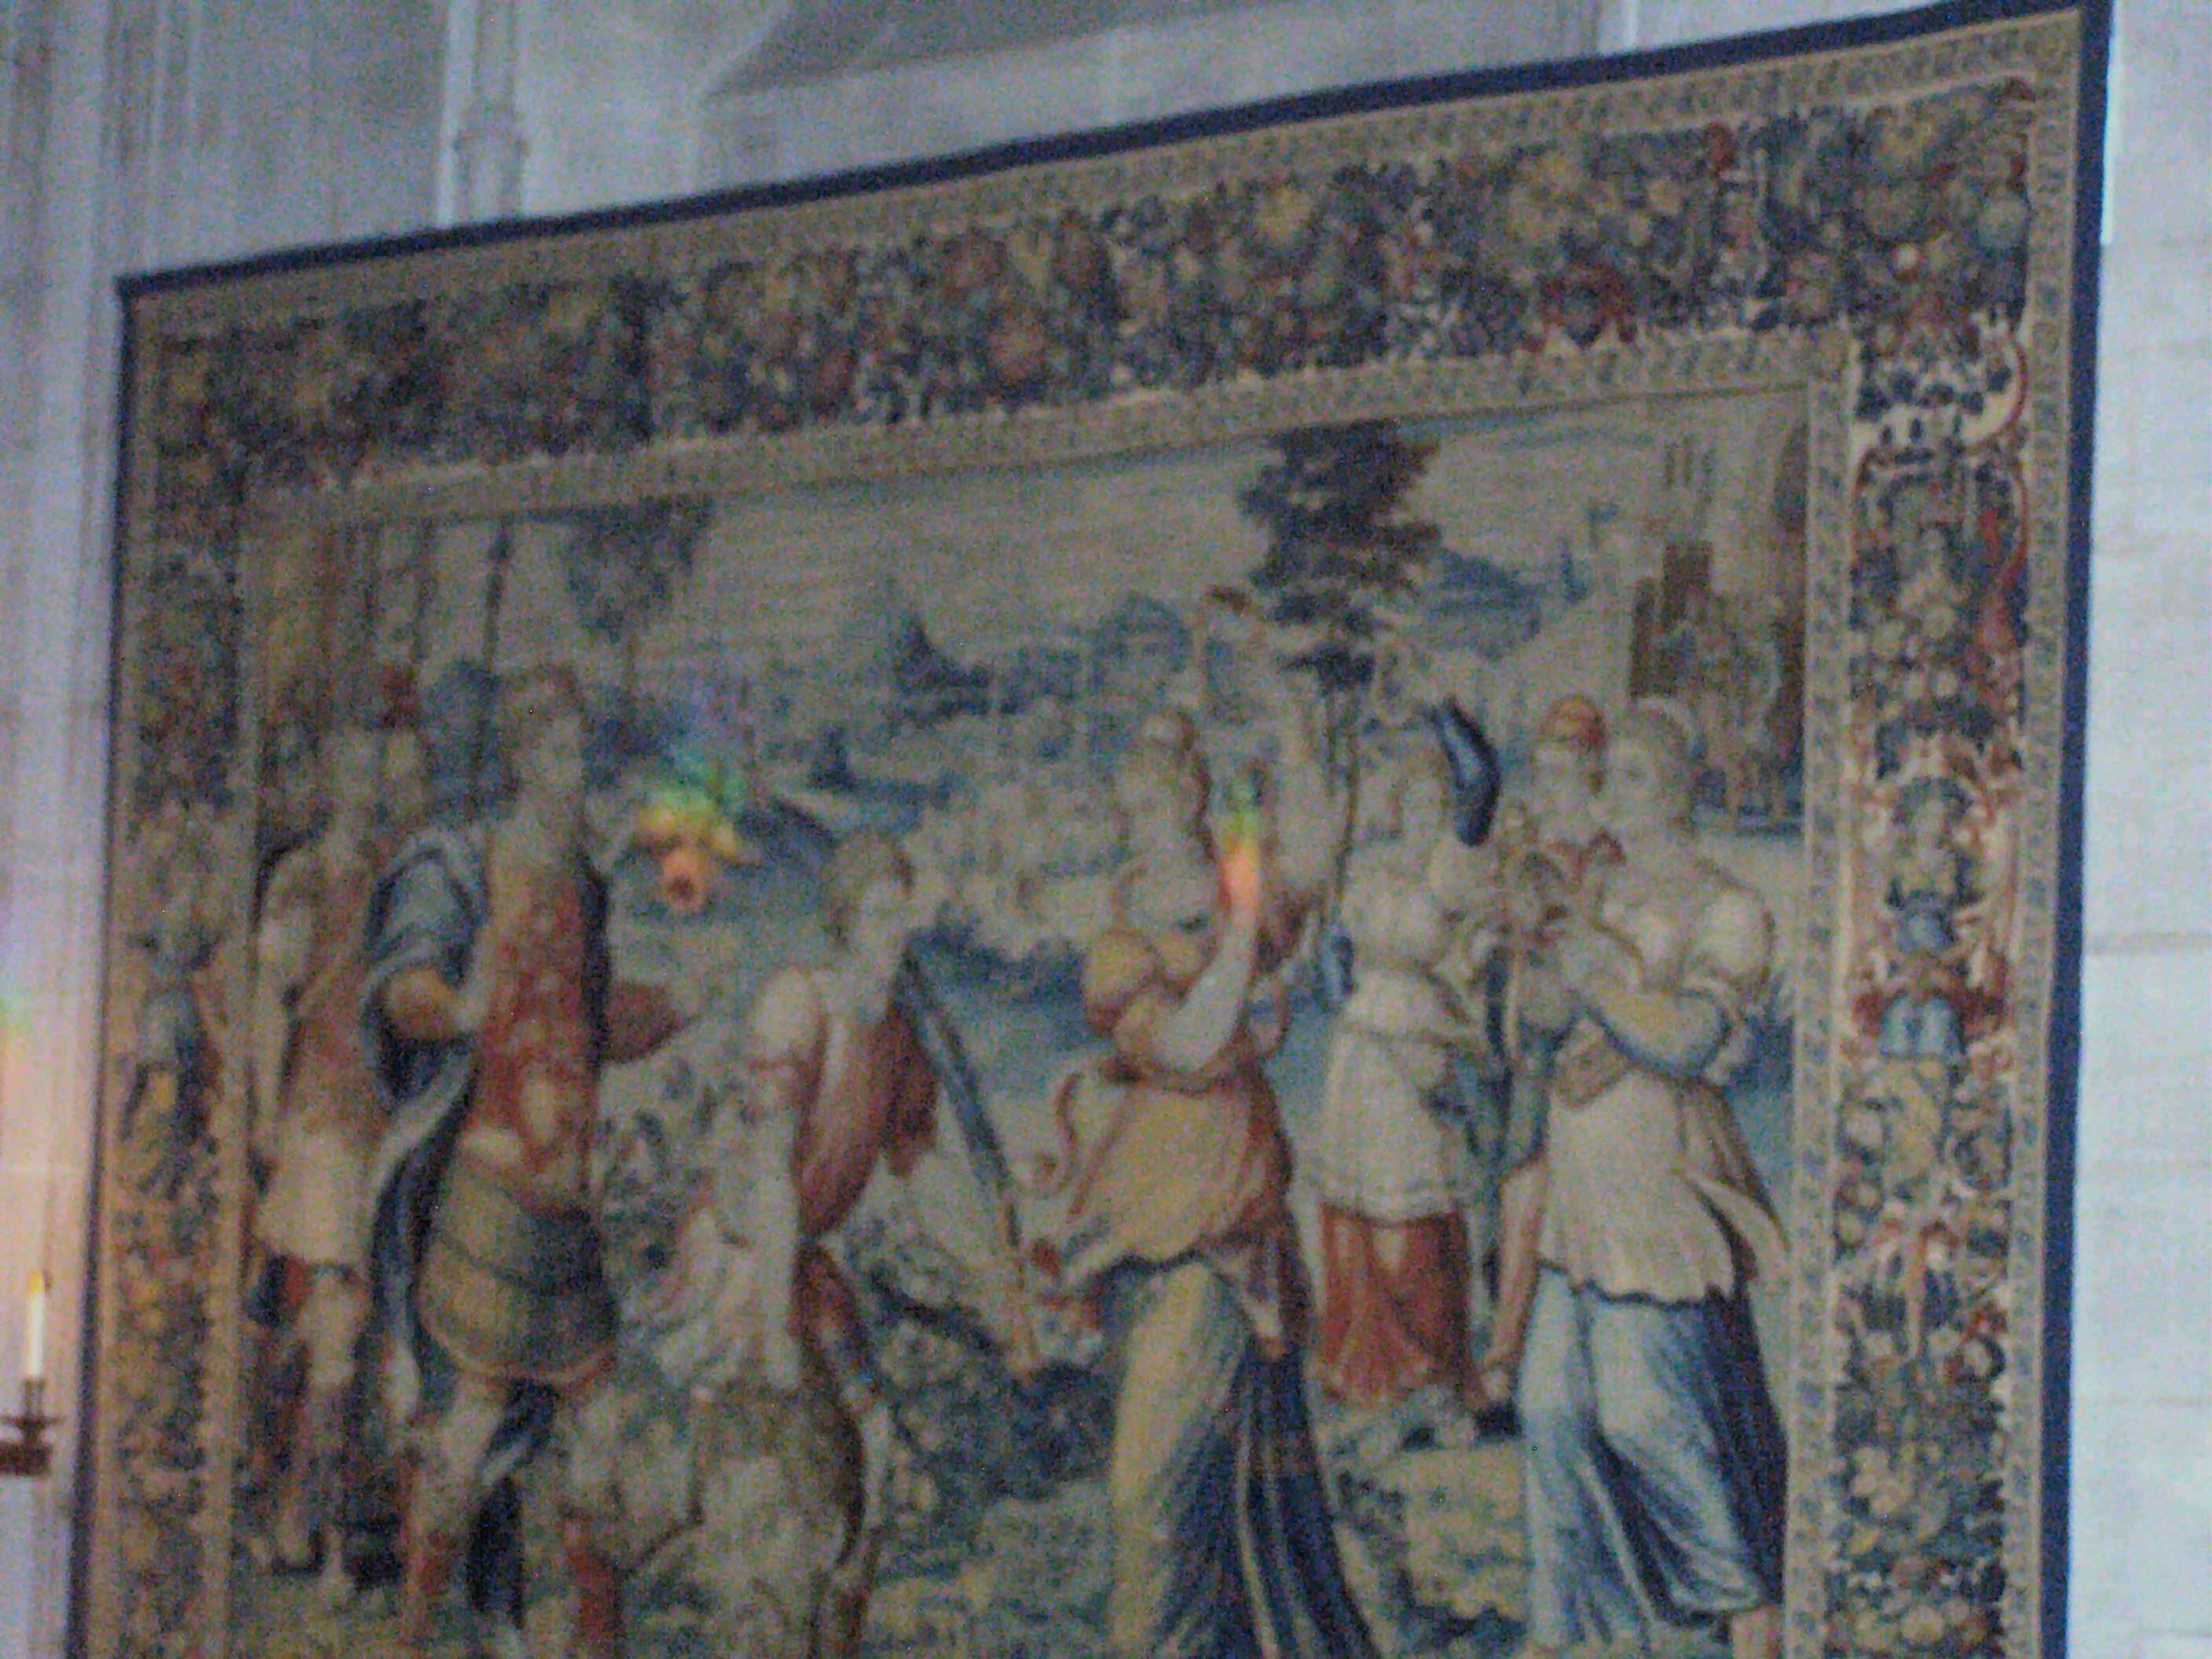 1 of 6 Tapestries (over 400 years old) given to Cathedral by Larz and Isabel Anderson who funded St. Mary's Chapel